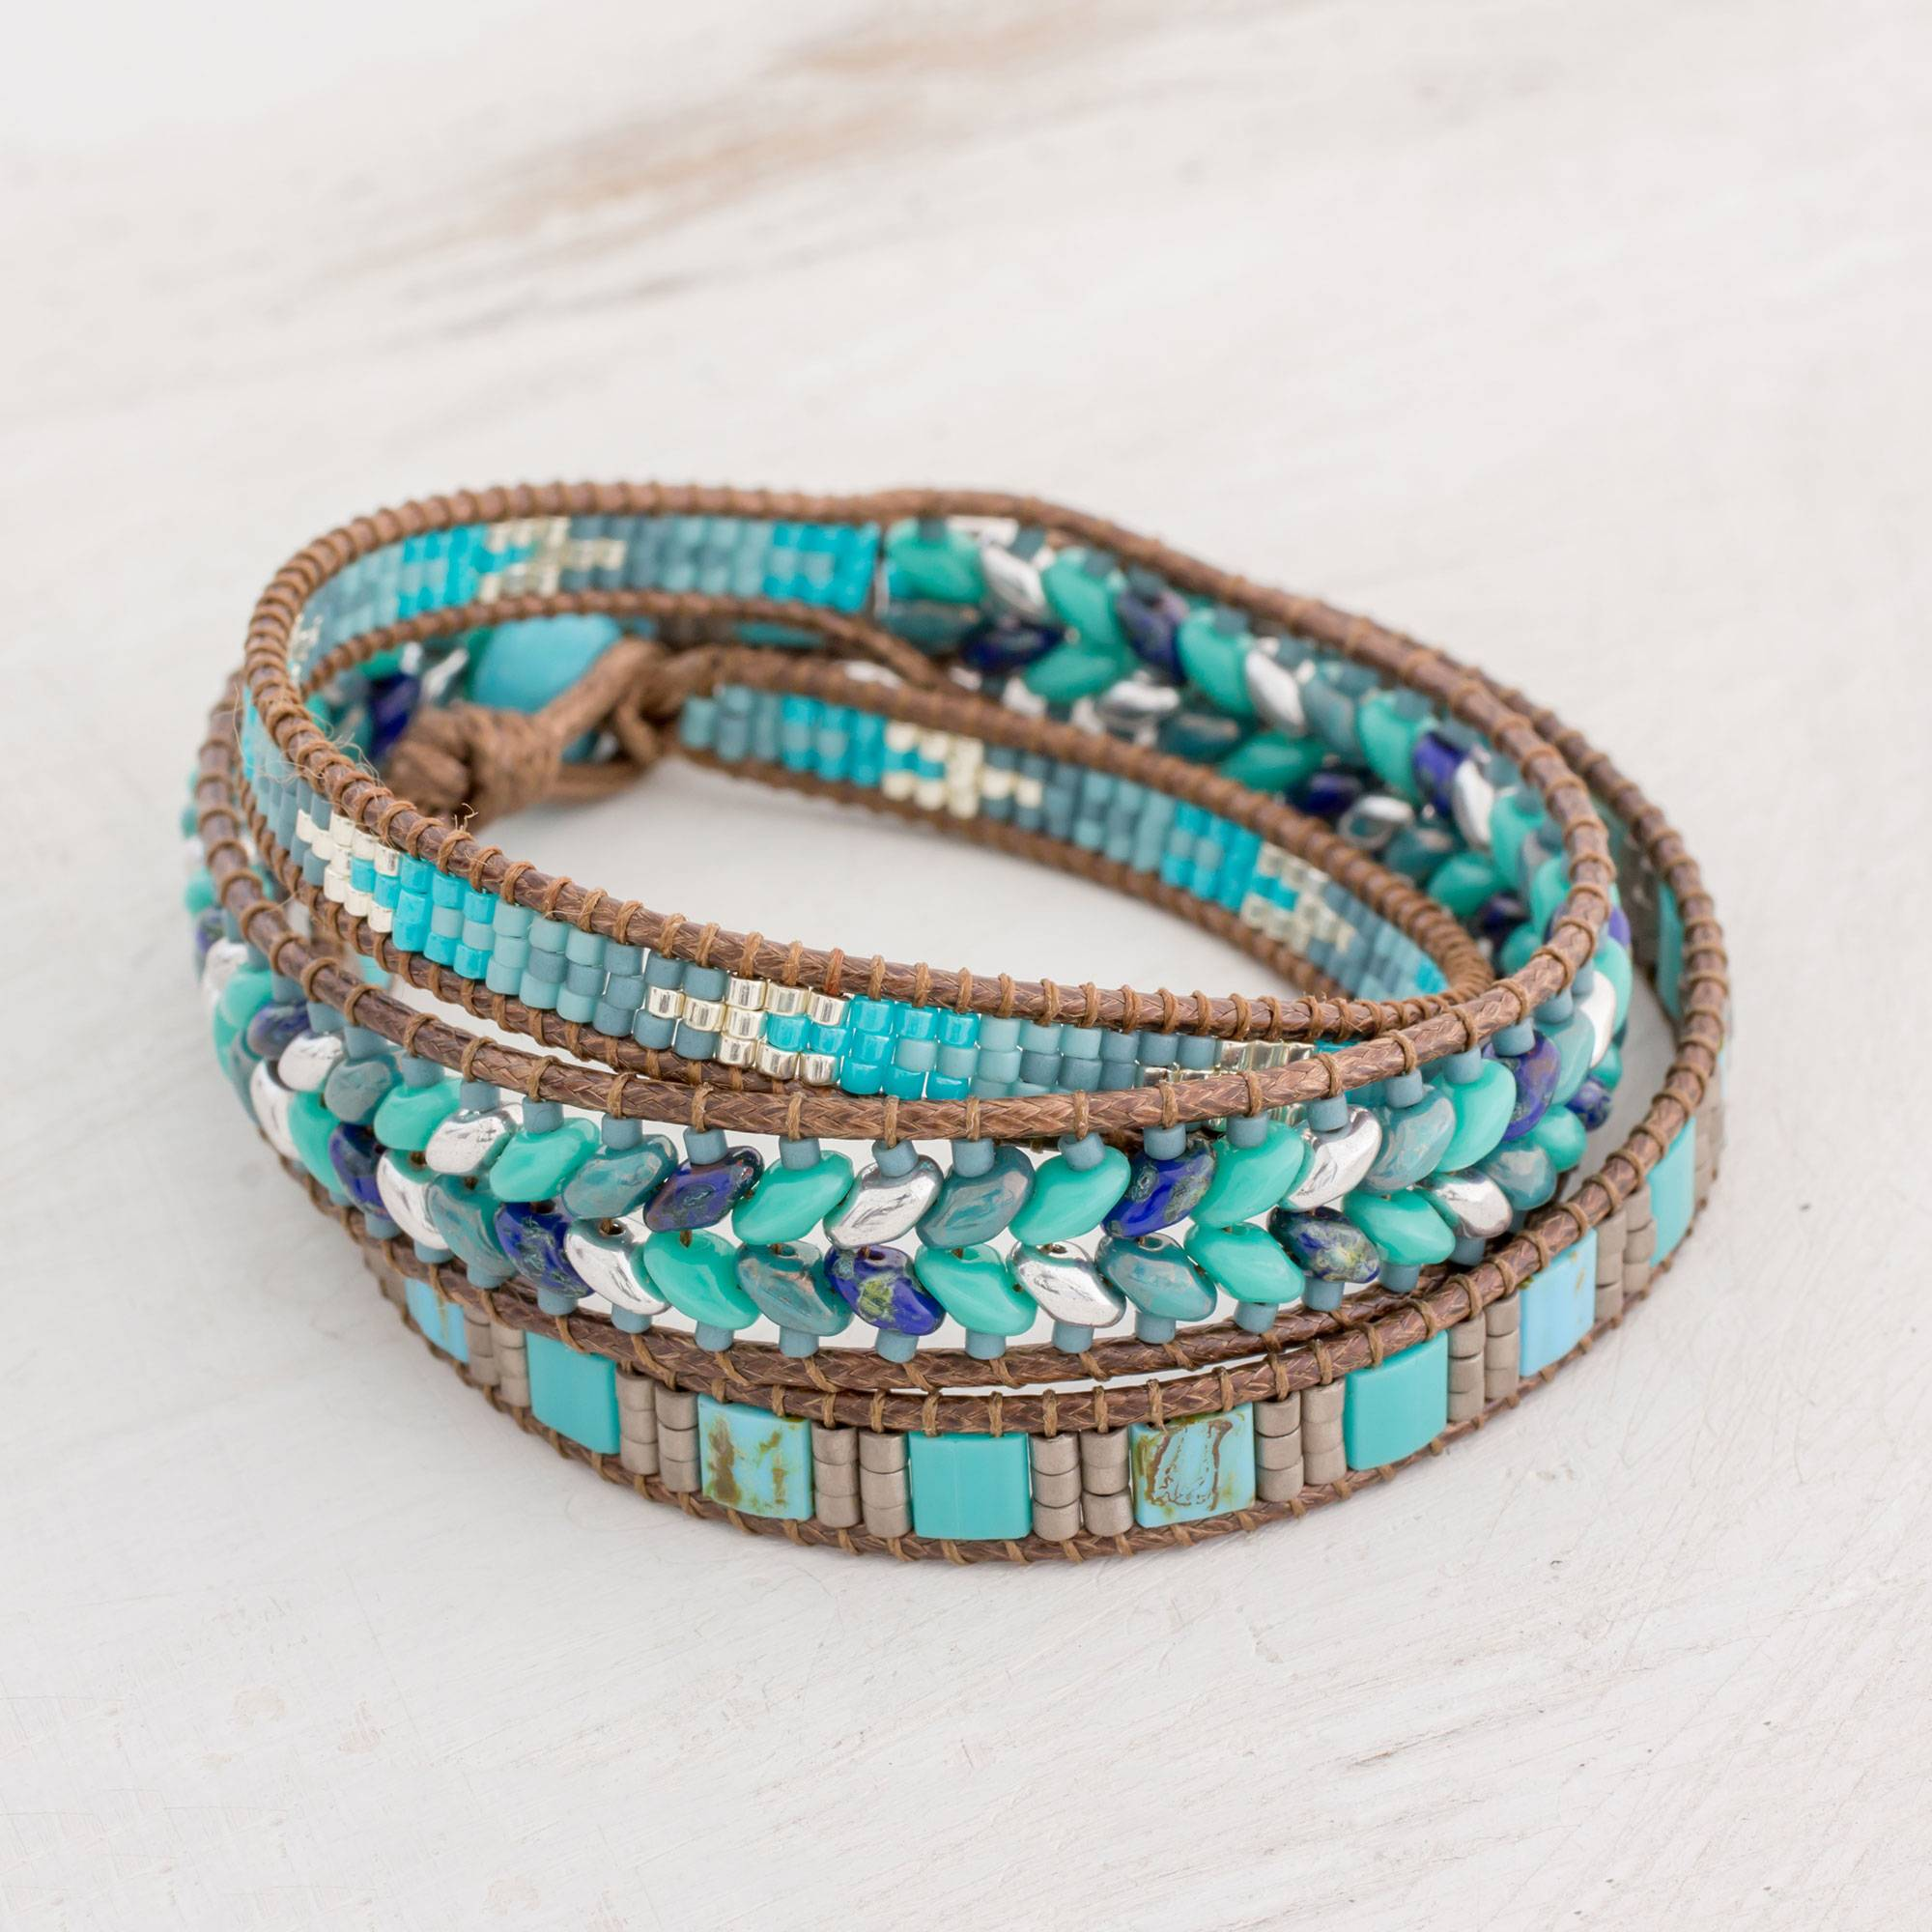 'Lines of Hope' Handmade Glass Beaded Wrap Bracelet in Blue from Guatemala spring accessories